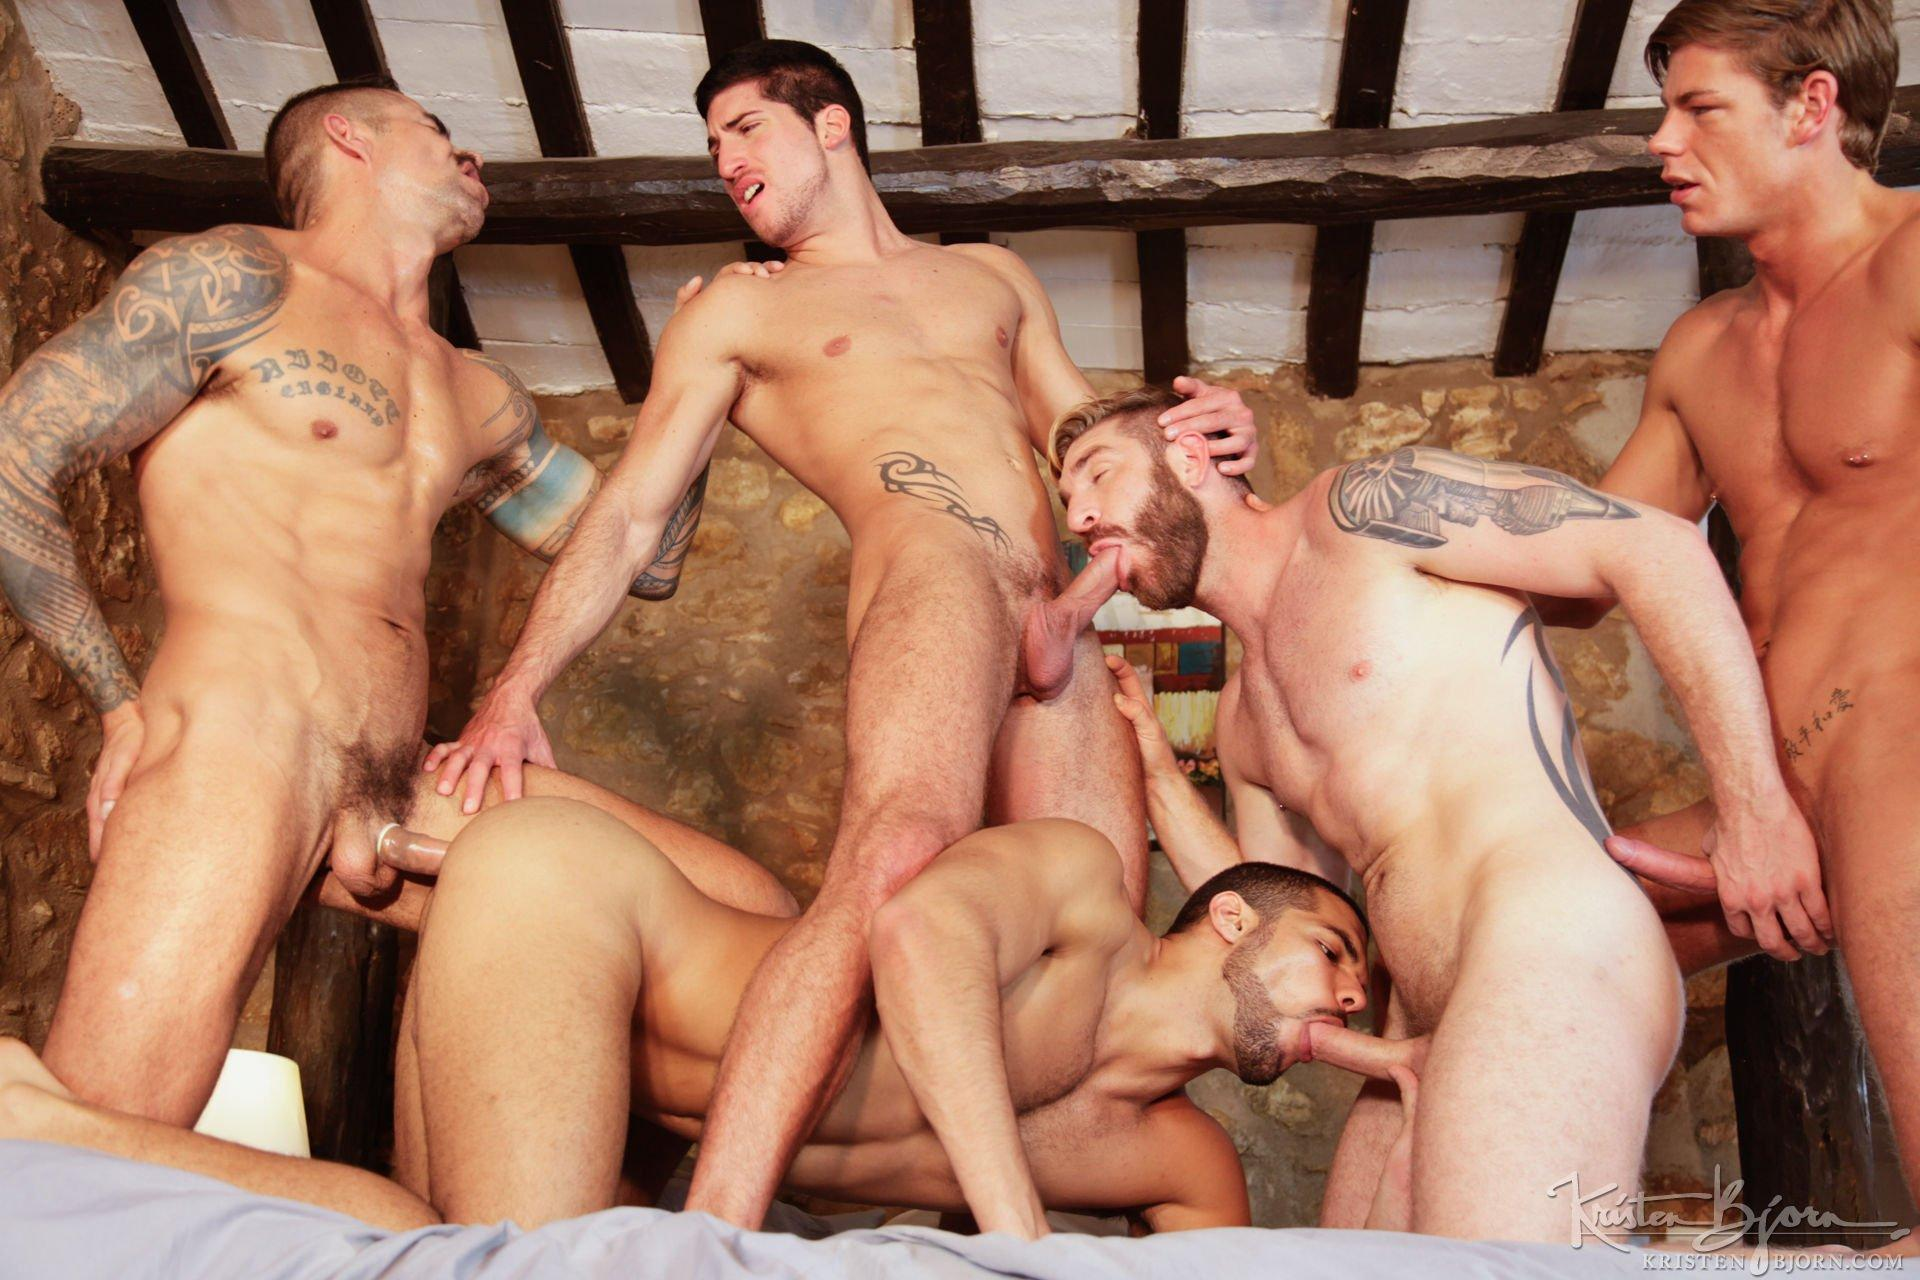 Gay men orgie xxx - Porn galleries